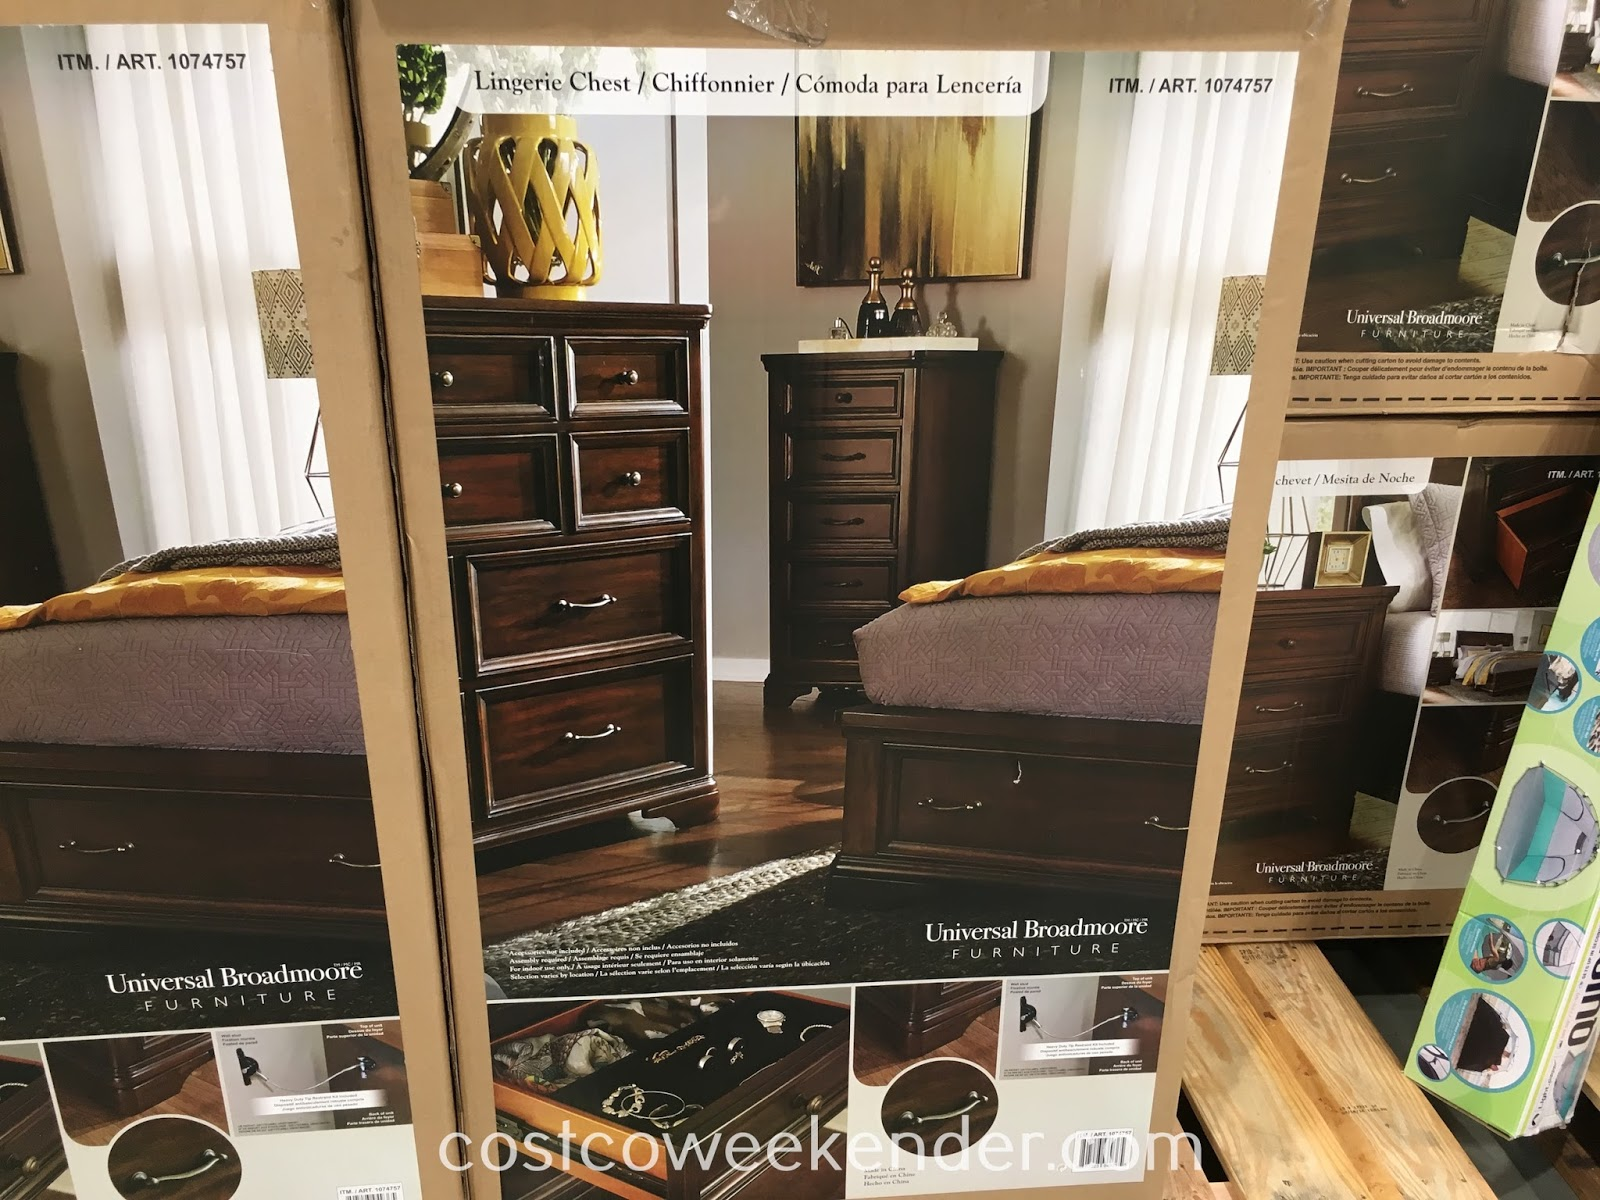 Have a good place to put your clothing away with the Universal Broadmoore Furniture Lingerie Chest